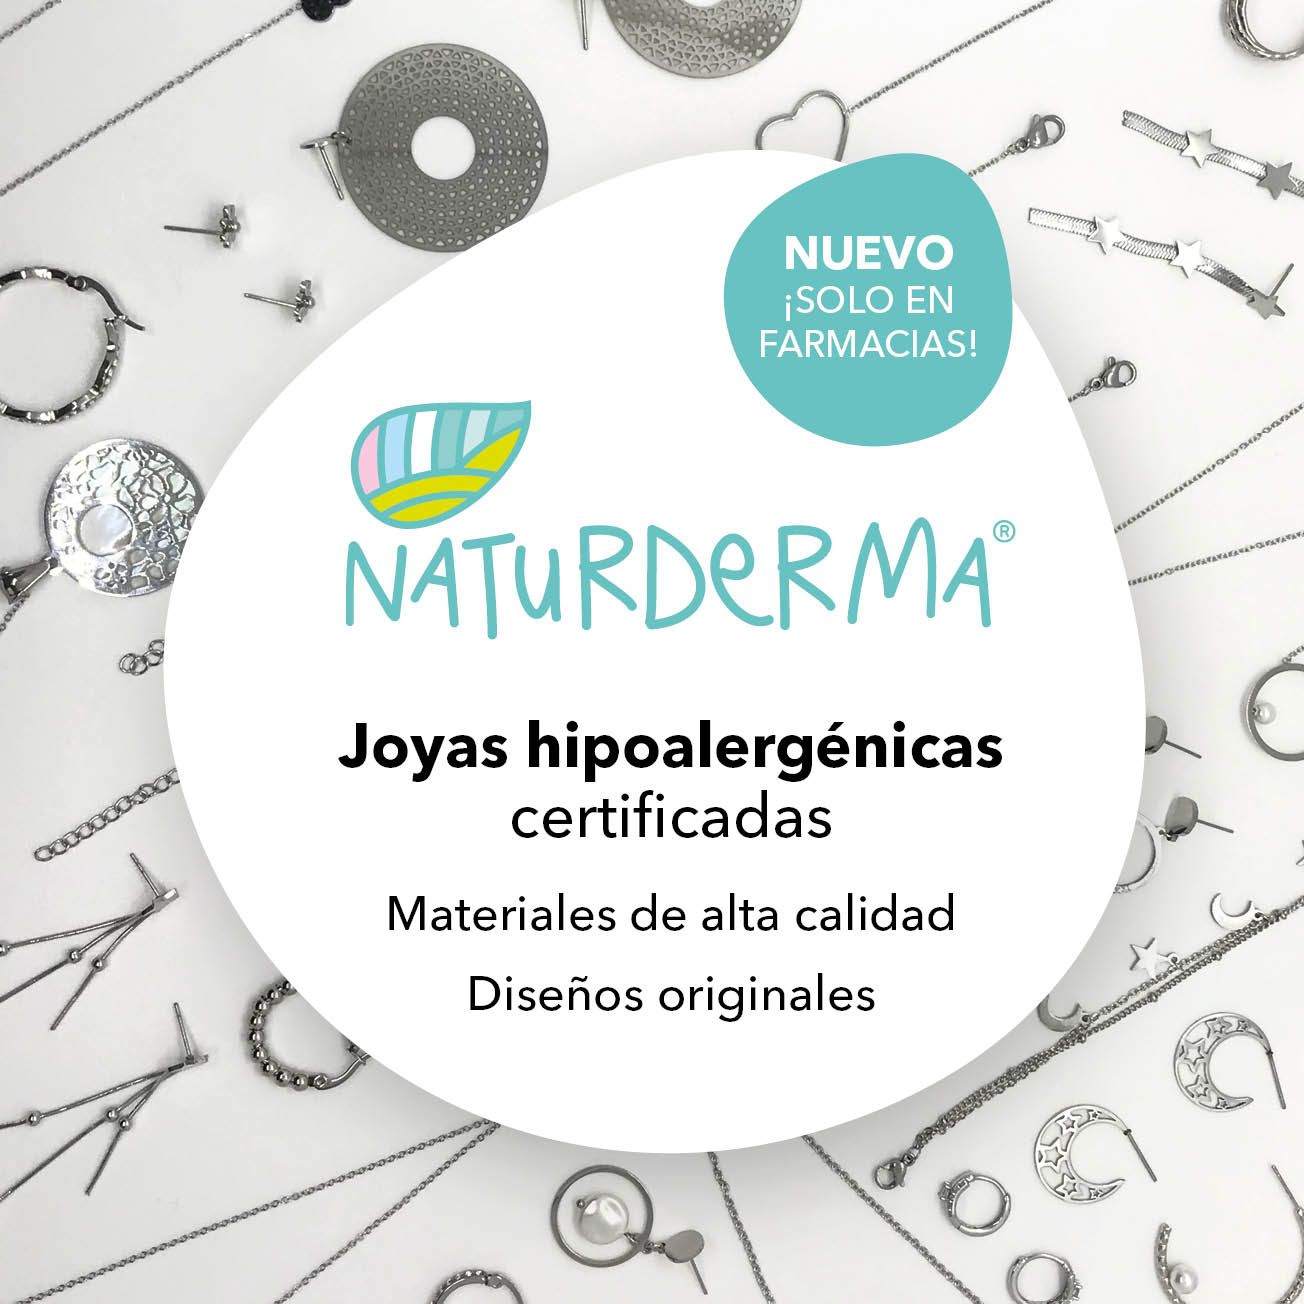 naturderma